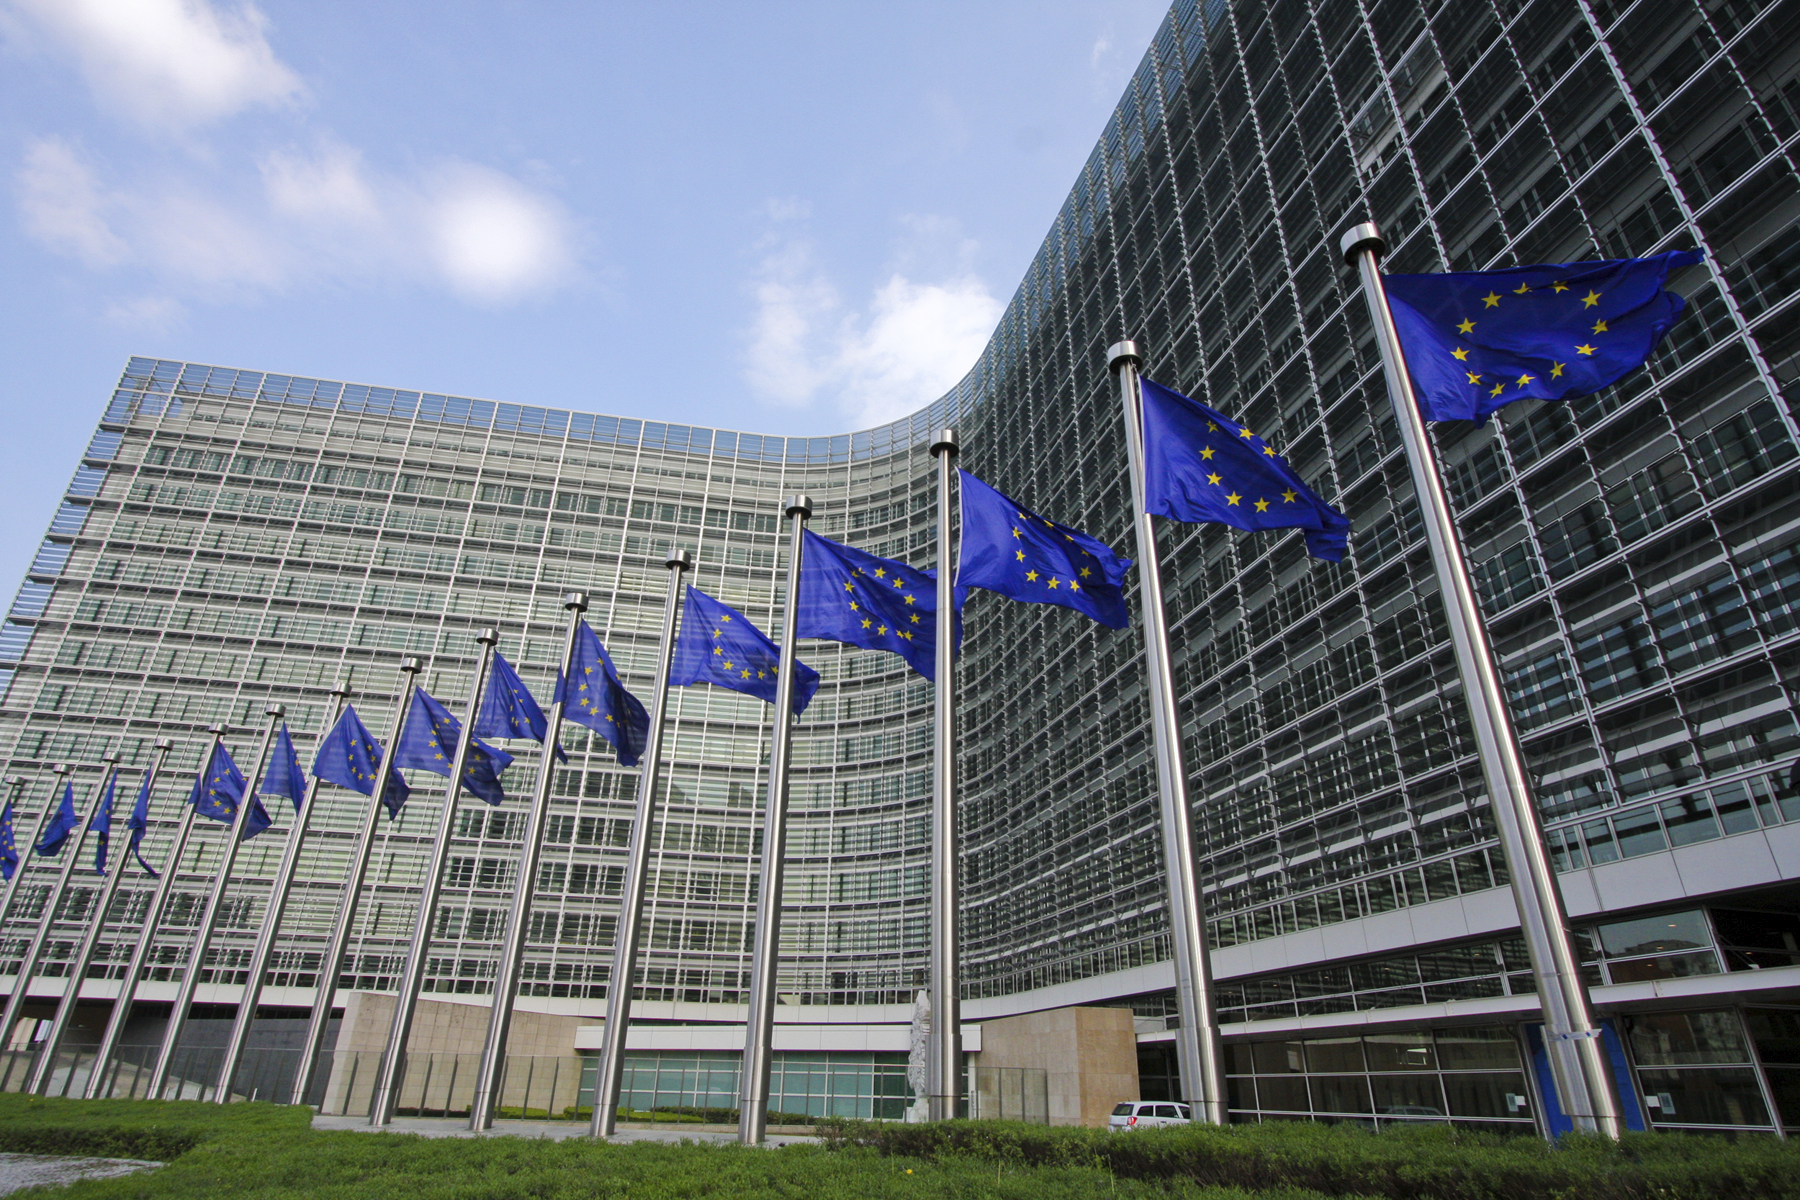 EU flags outside the European Commission Brussels Belgium.